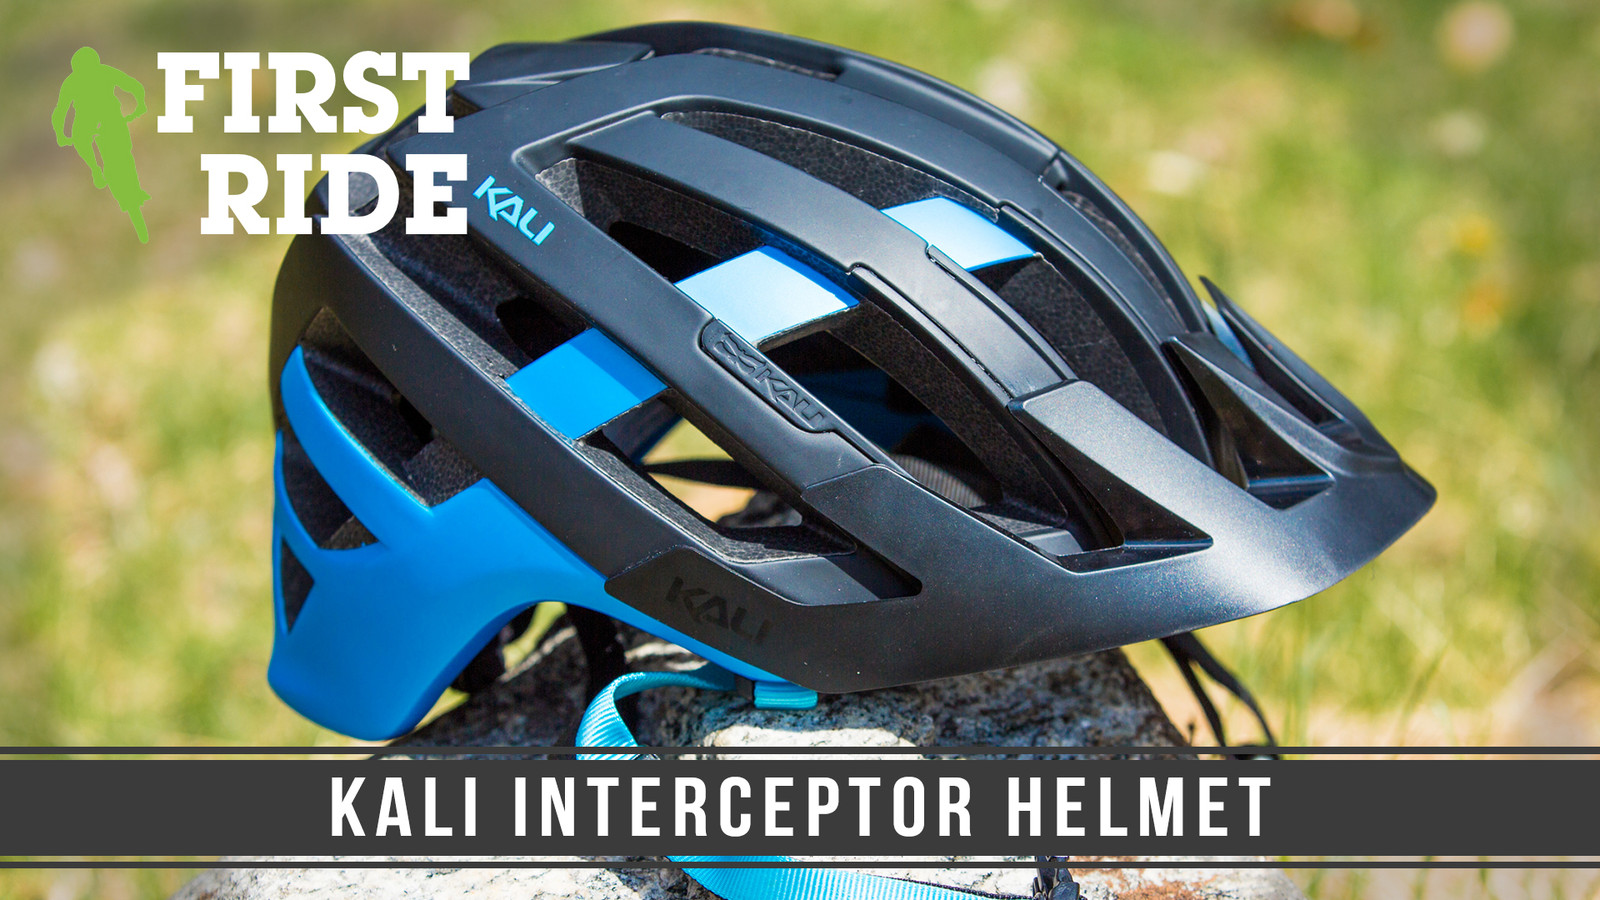 First Ride: Kali Interceptor